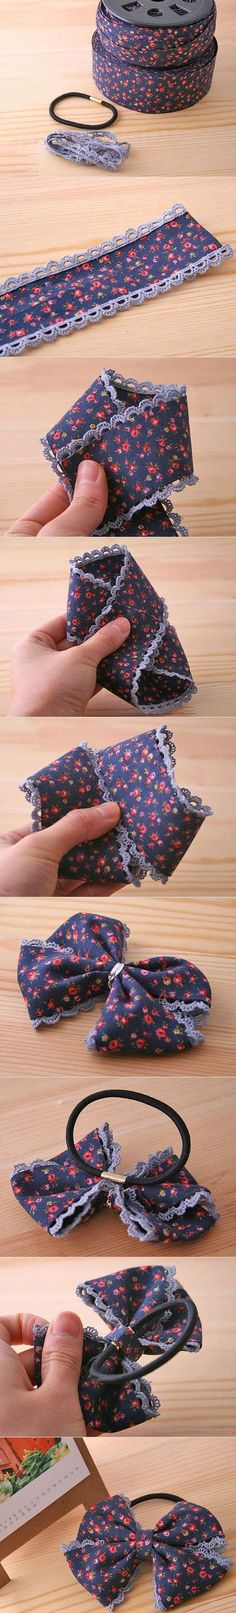 Pile of sugar, find life, collect beautiful, share pictures: crafts headbands, - Fabric Crafts - Diy Ribbon, Ribbon Crafts, Ribbon Bows, Fabric Crafts, Diy Crafts, Ribbons, Making Hair Bows, Diy Hair Bows, Diy Headband